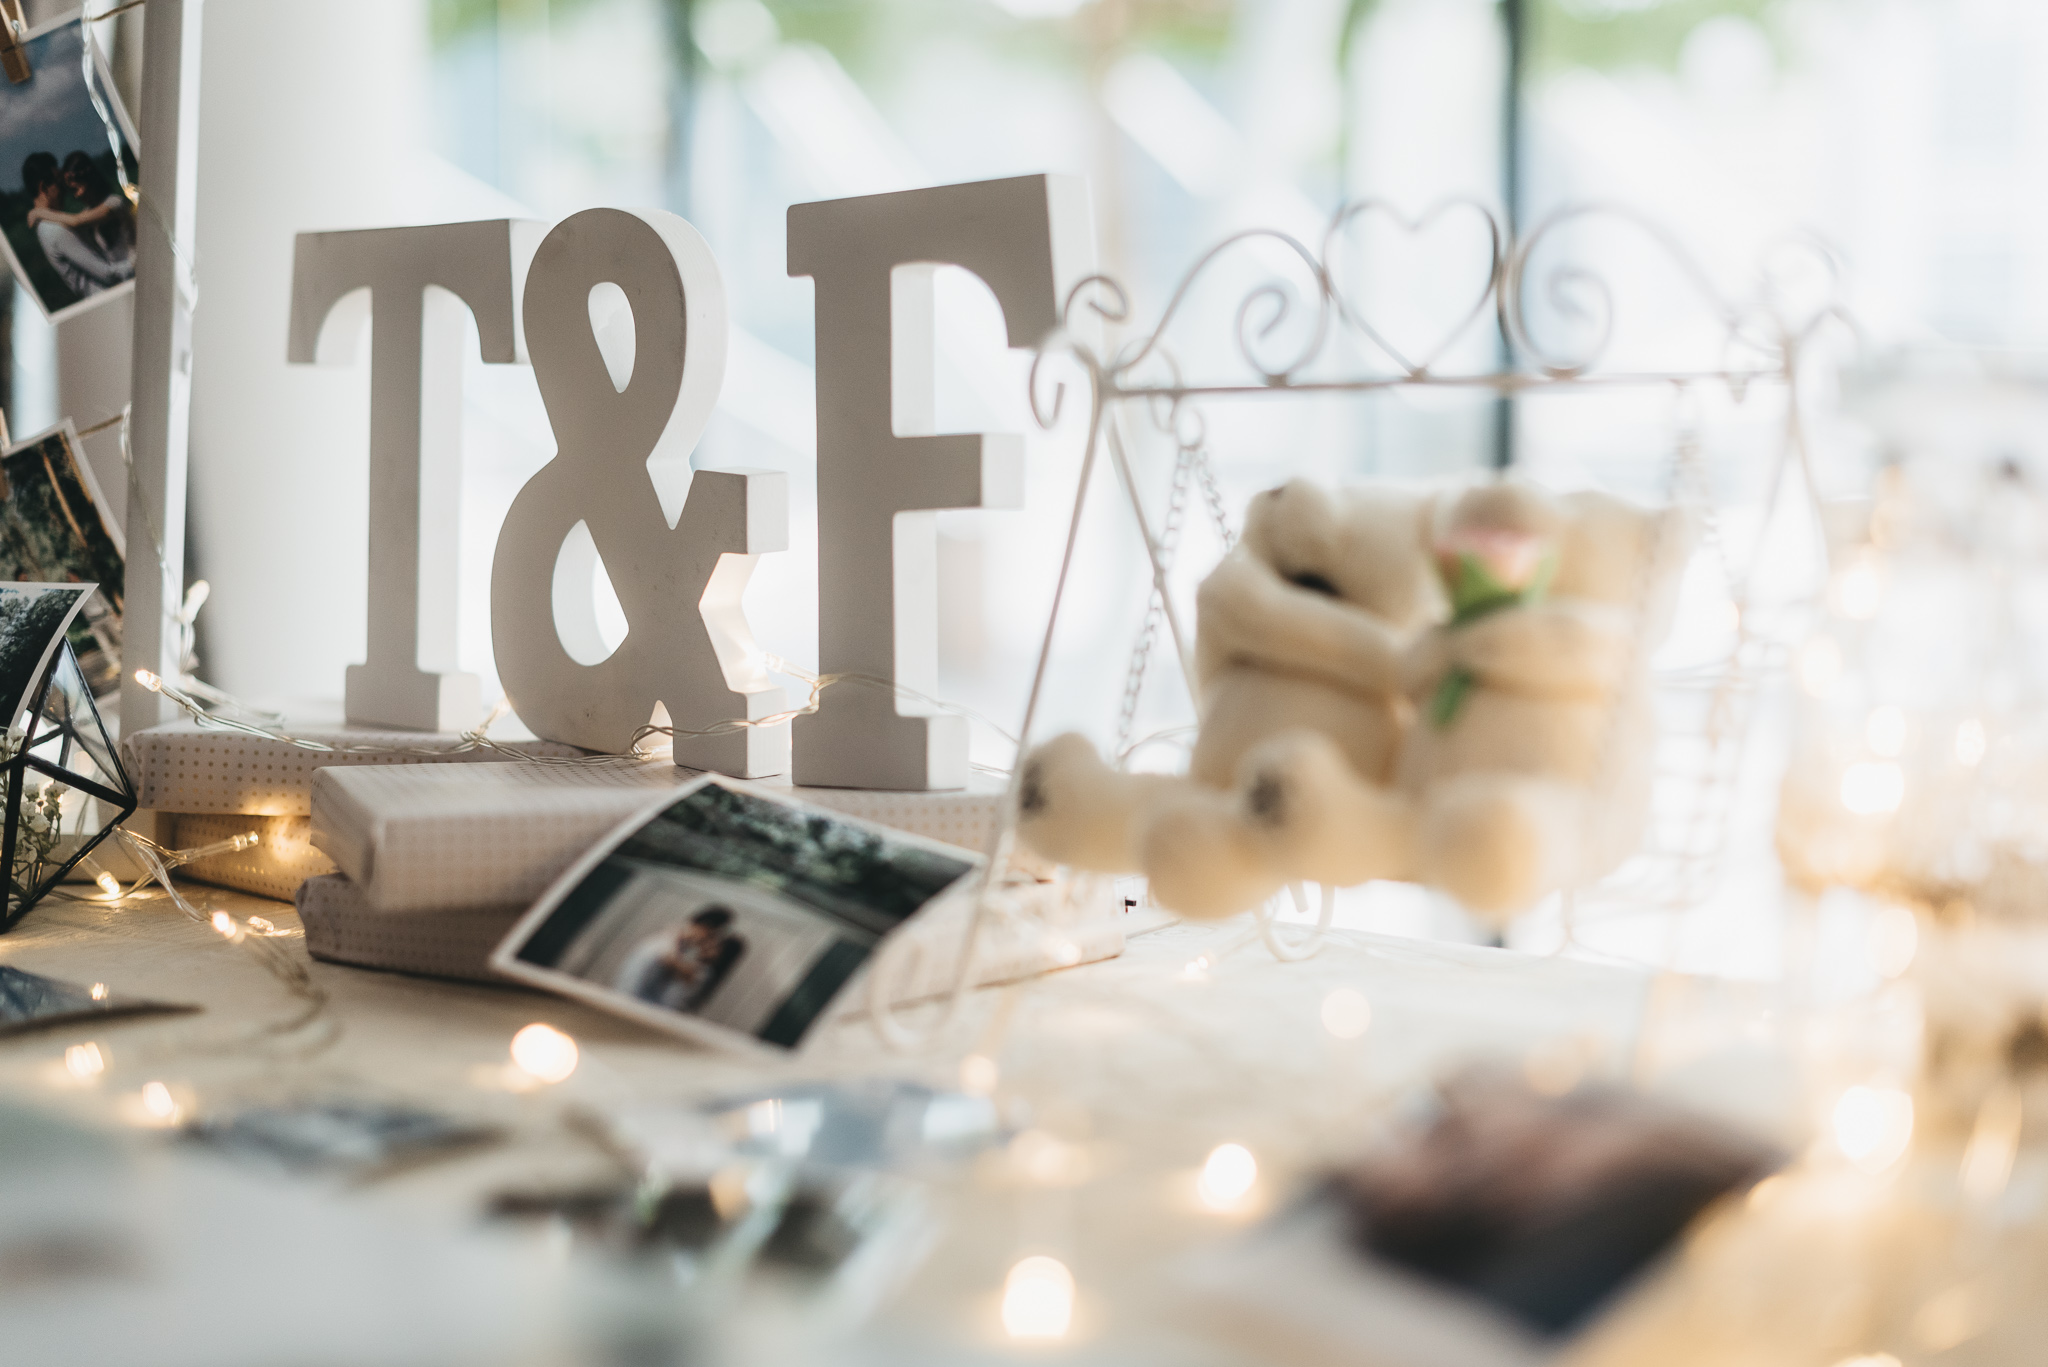 Fiona & Terence Wedding Day Highlights (resized for sharing) - 194.jpg